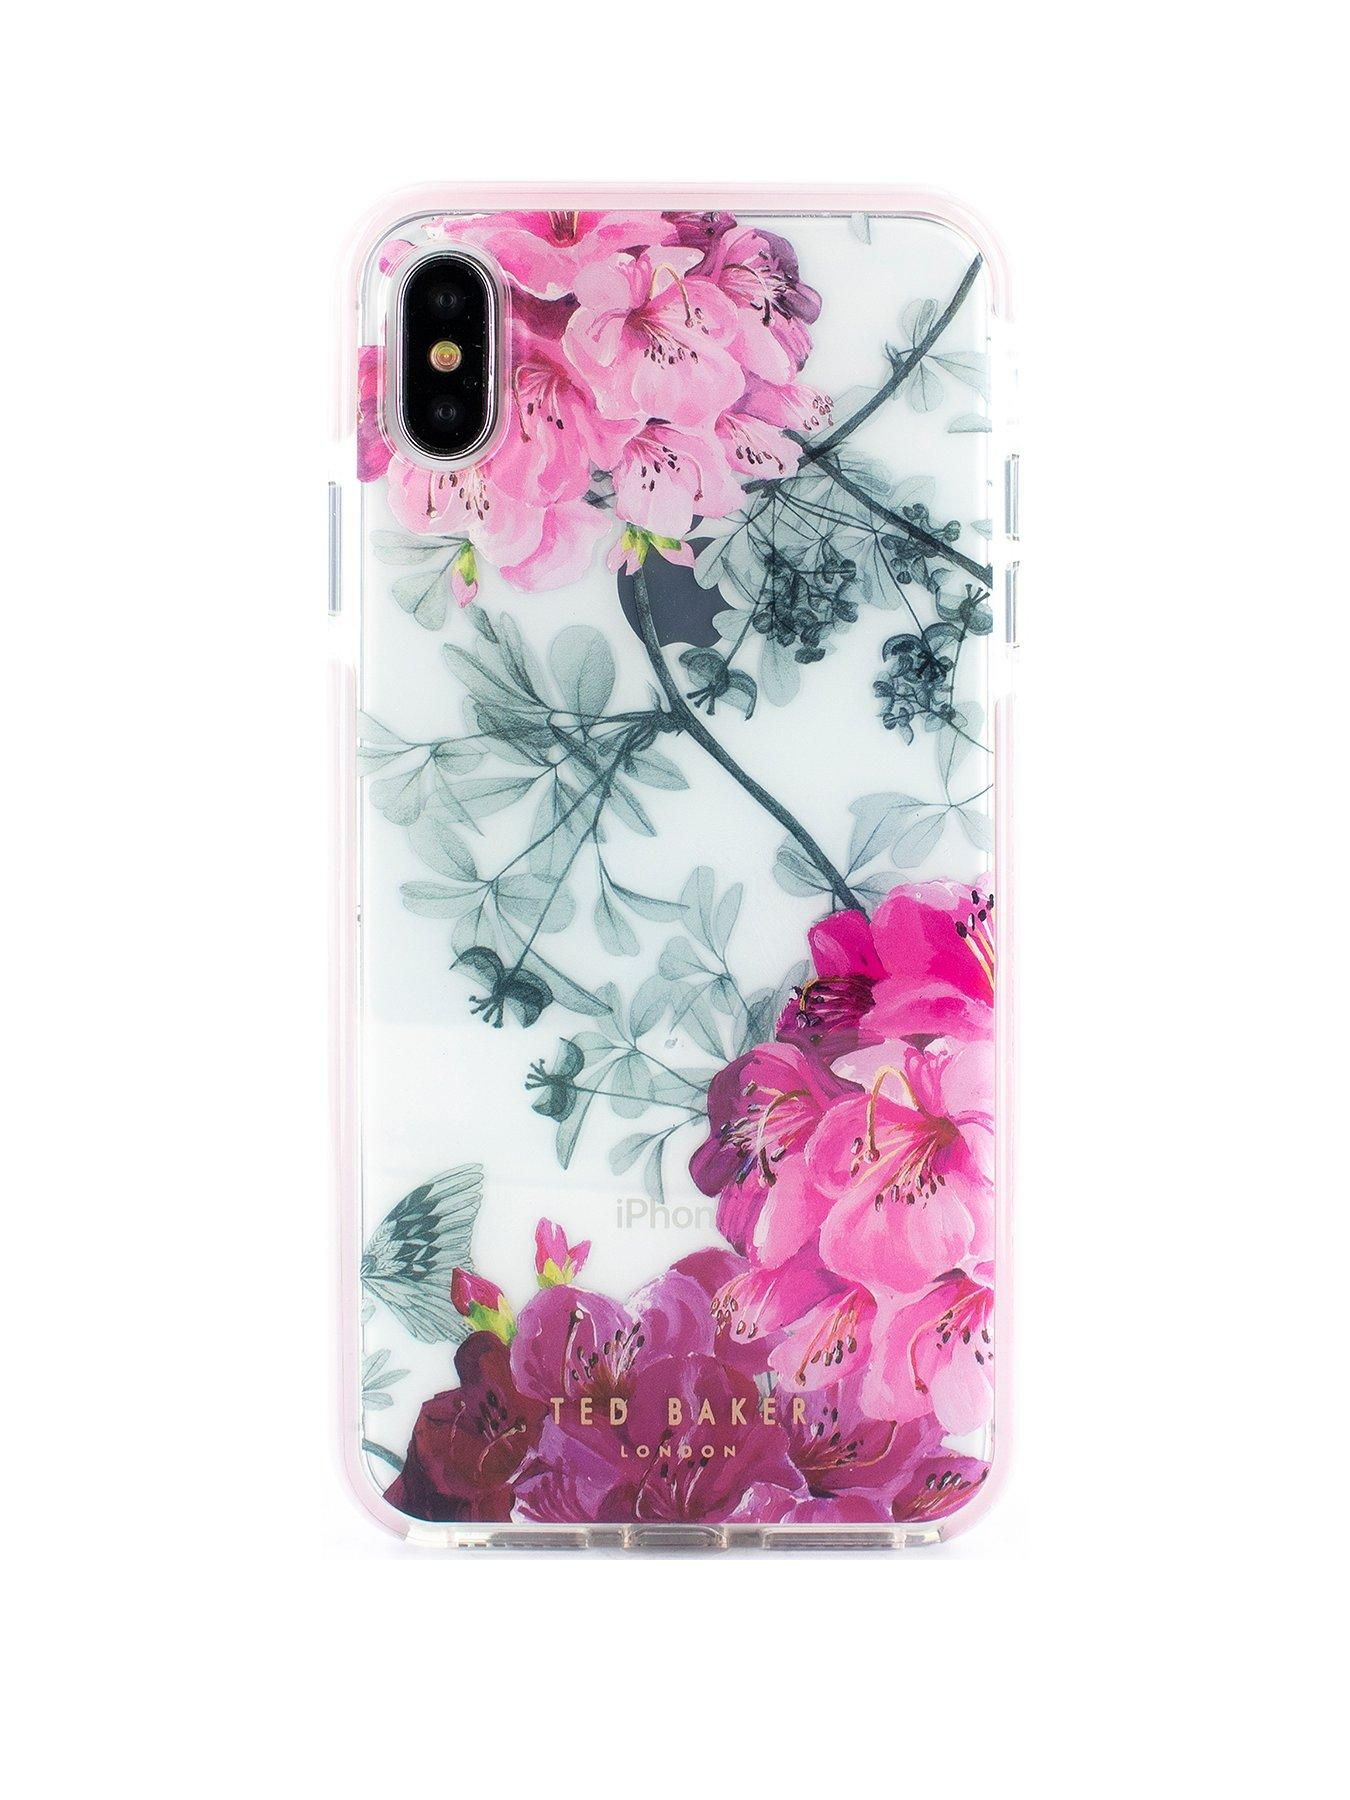 apple iphone 8 case ted baker